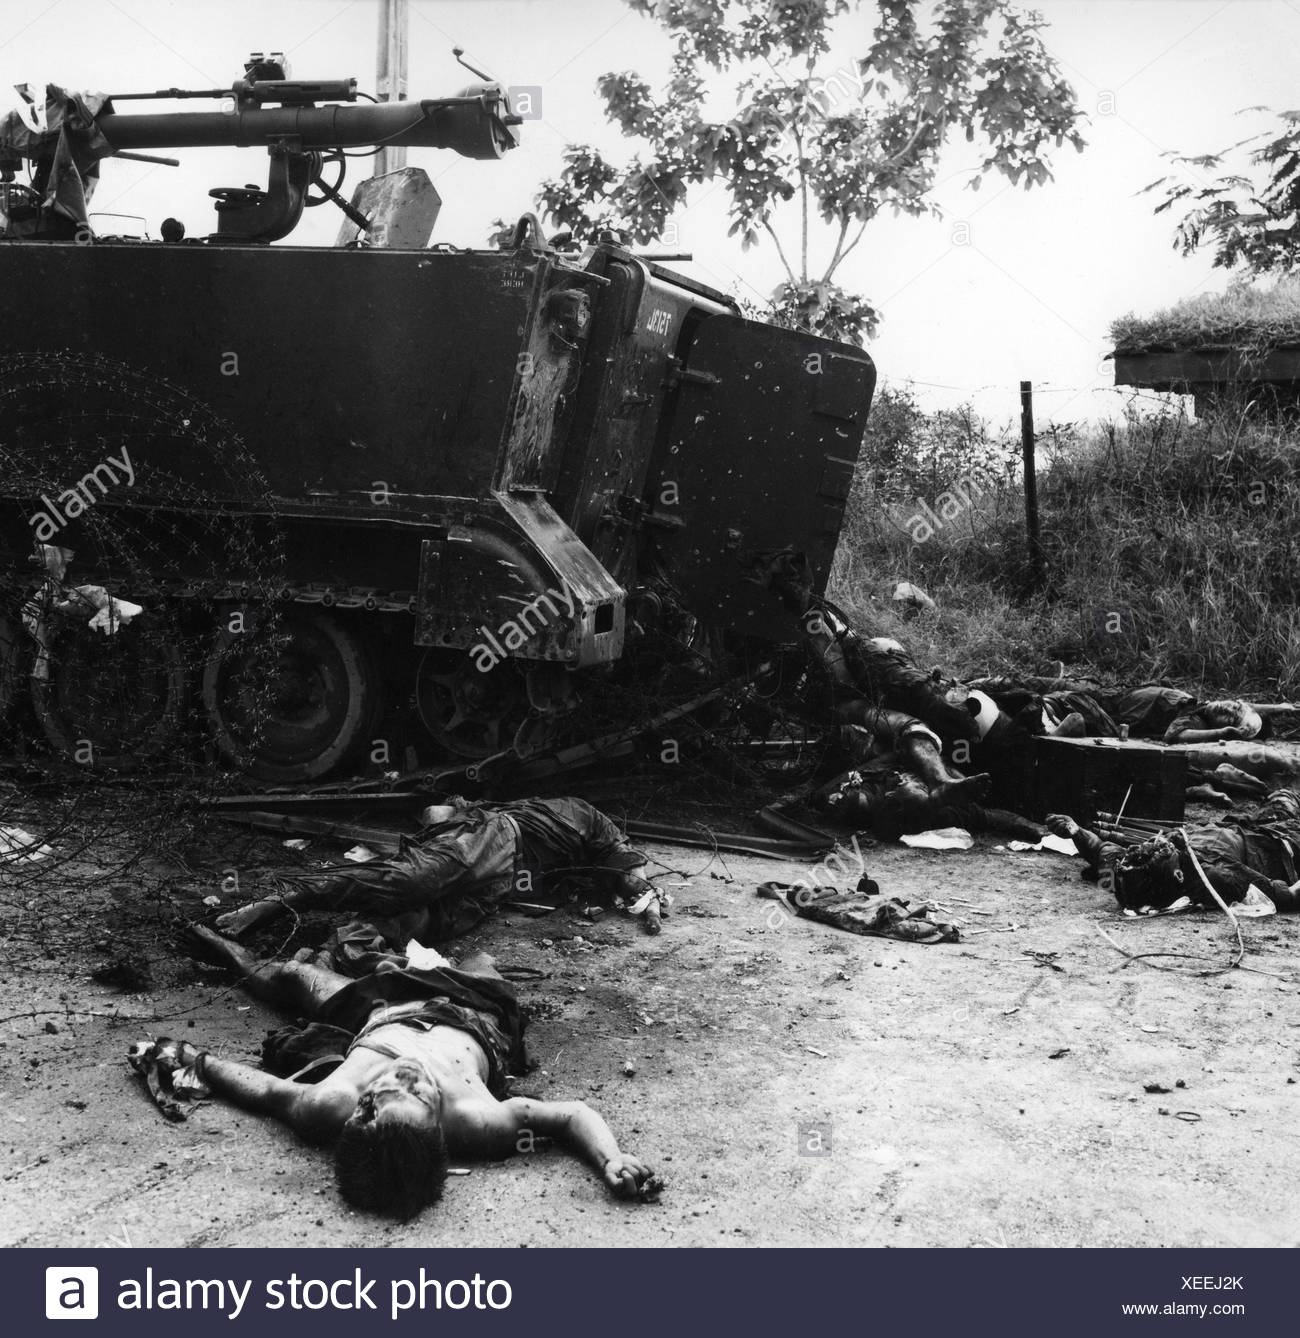 events, Vietnam War, dead bodies and a destroyed military vehicle after a Viet Cong attack on Phnom Penh, the capital of Cambodia, 7.10.1972, Additional-Rights-Clearances-NA - Stock Image